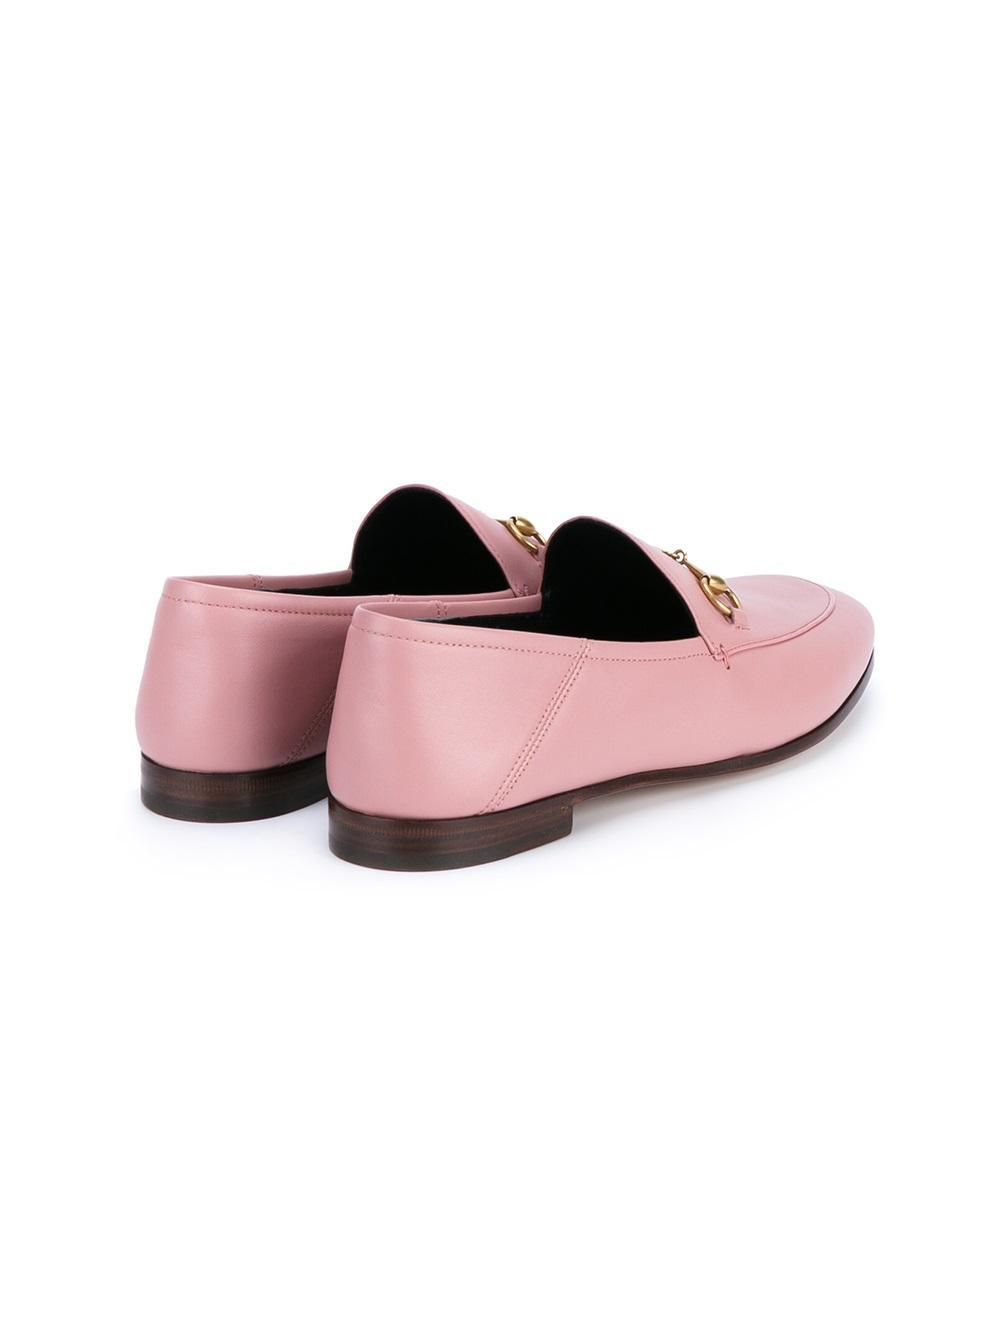 Lyst - Gucci Jordaan Leather Loafers in Pink